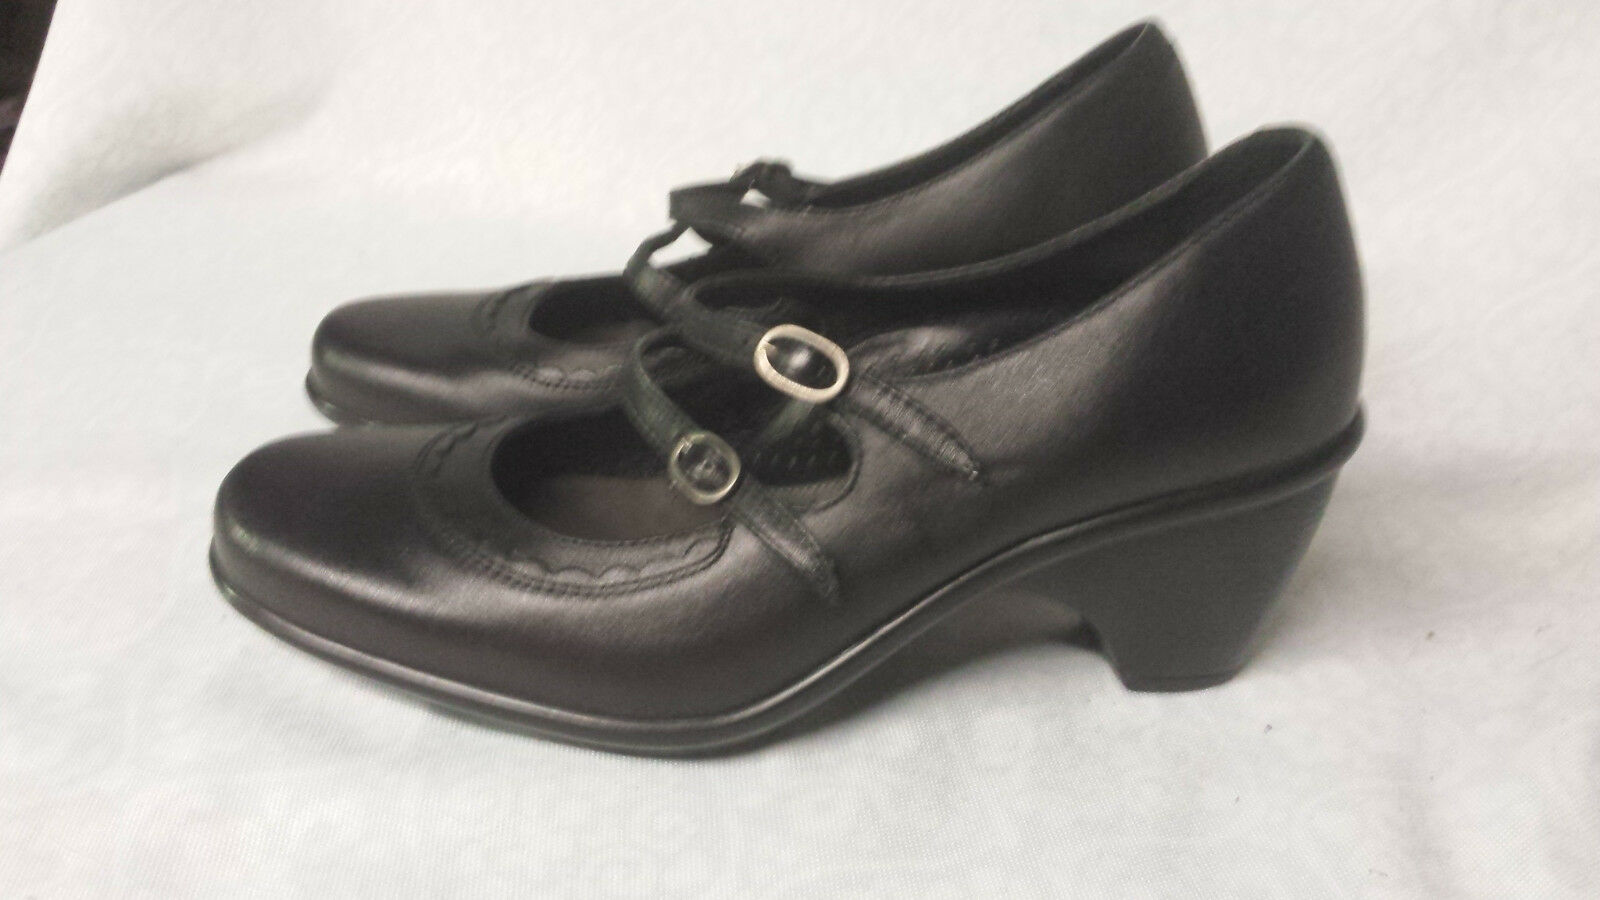 Dansko Black Leather Mary Jane Pumps Clog Heels Women's Size Size Size  EU 37   US 6.5 - 7 f82403